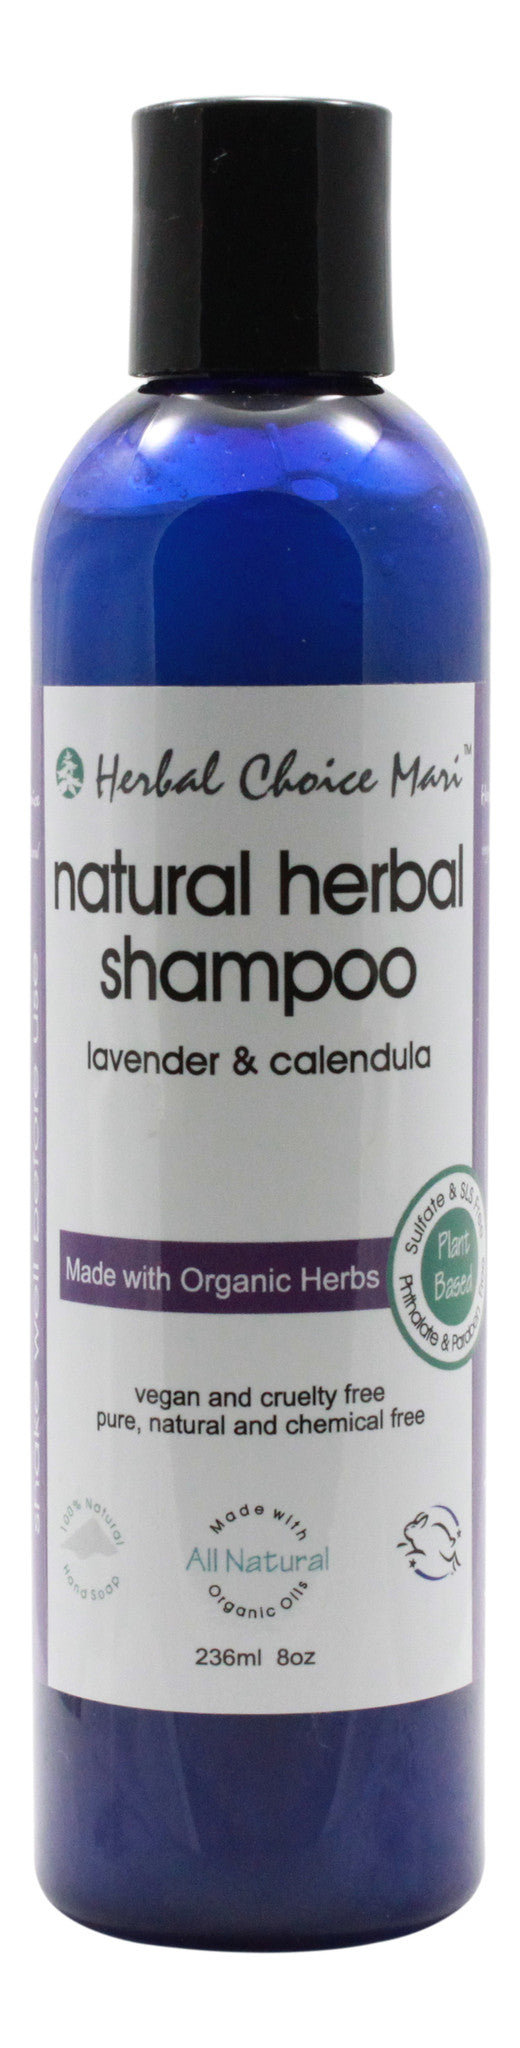 Natural Herbal Shampoo - Lavender & Calendula - 8 oz Bottle - Front